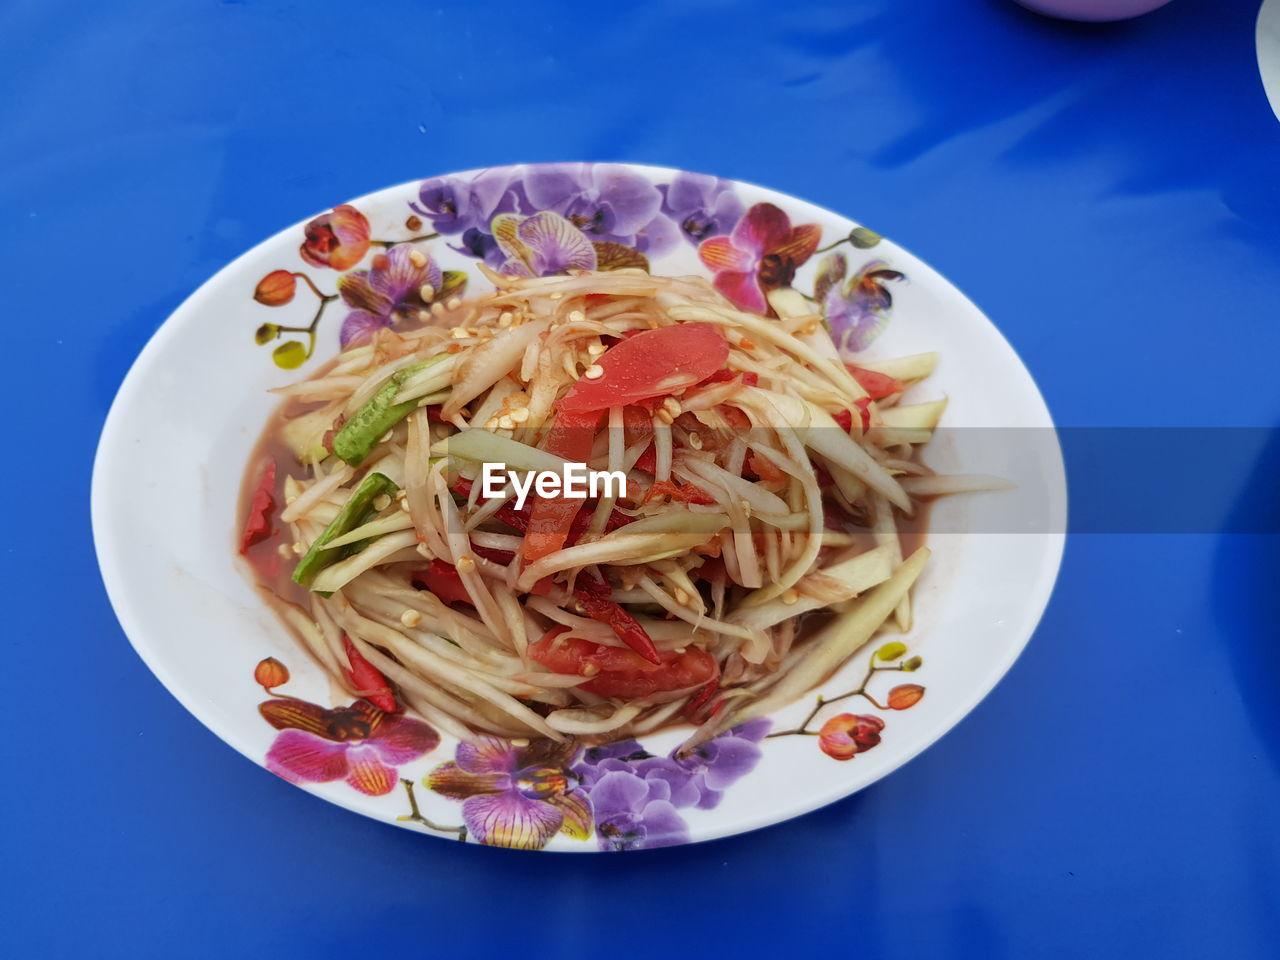 freshness, food and drink, food, plate, indoors, wellbeing, pasta, healthy eating, italian food, ready-to-eat, blue, no people, close-up, table, still life, directly above, vegetable, fruit, high angle view, serving size, spaghetti, blue background, temptation, snack, dinner, crockery, vegetarian food